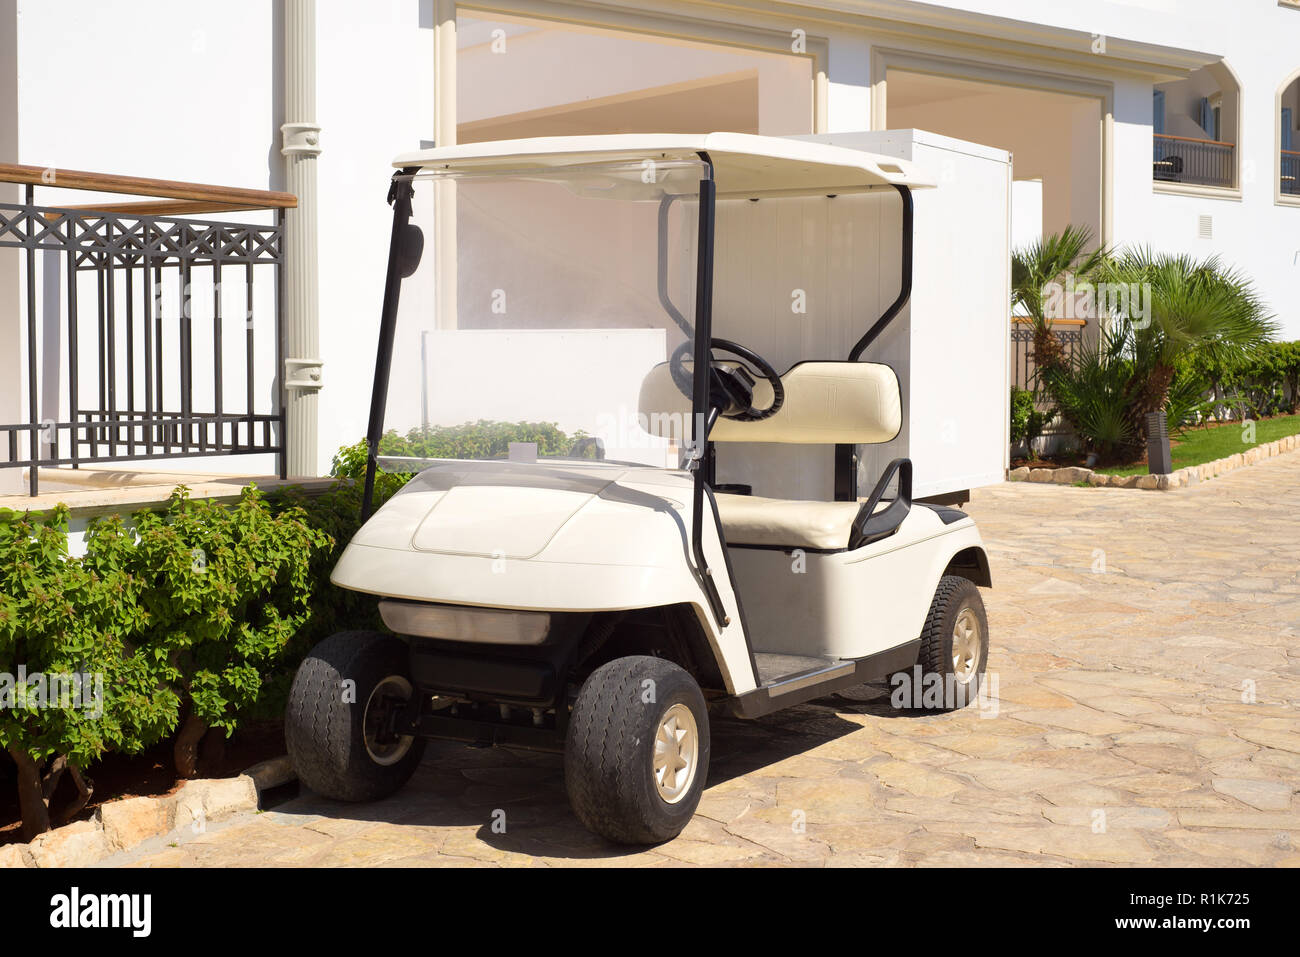 Buggy car for luggage in a Greek resort - Stock Image